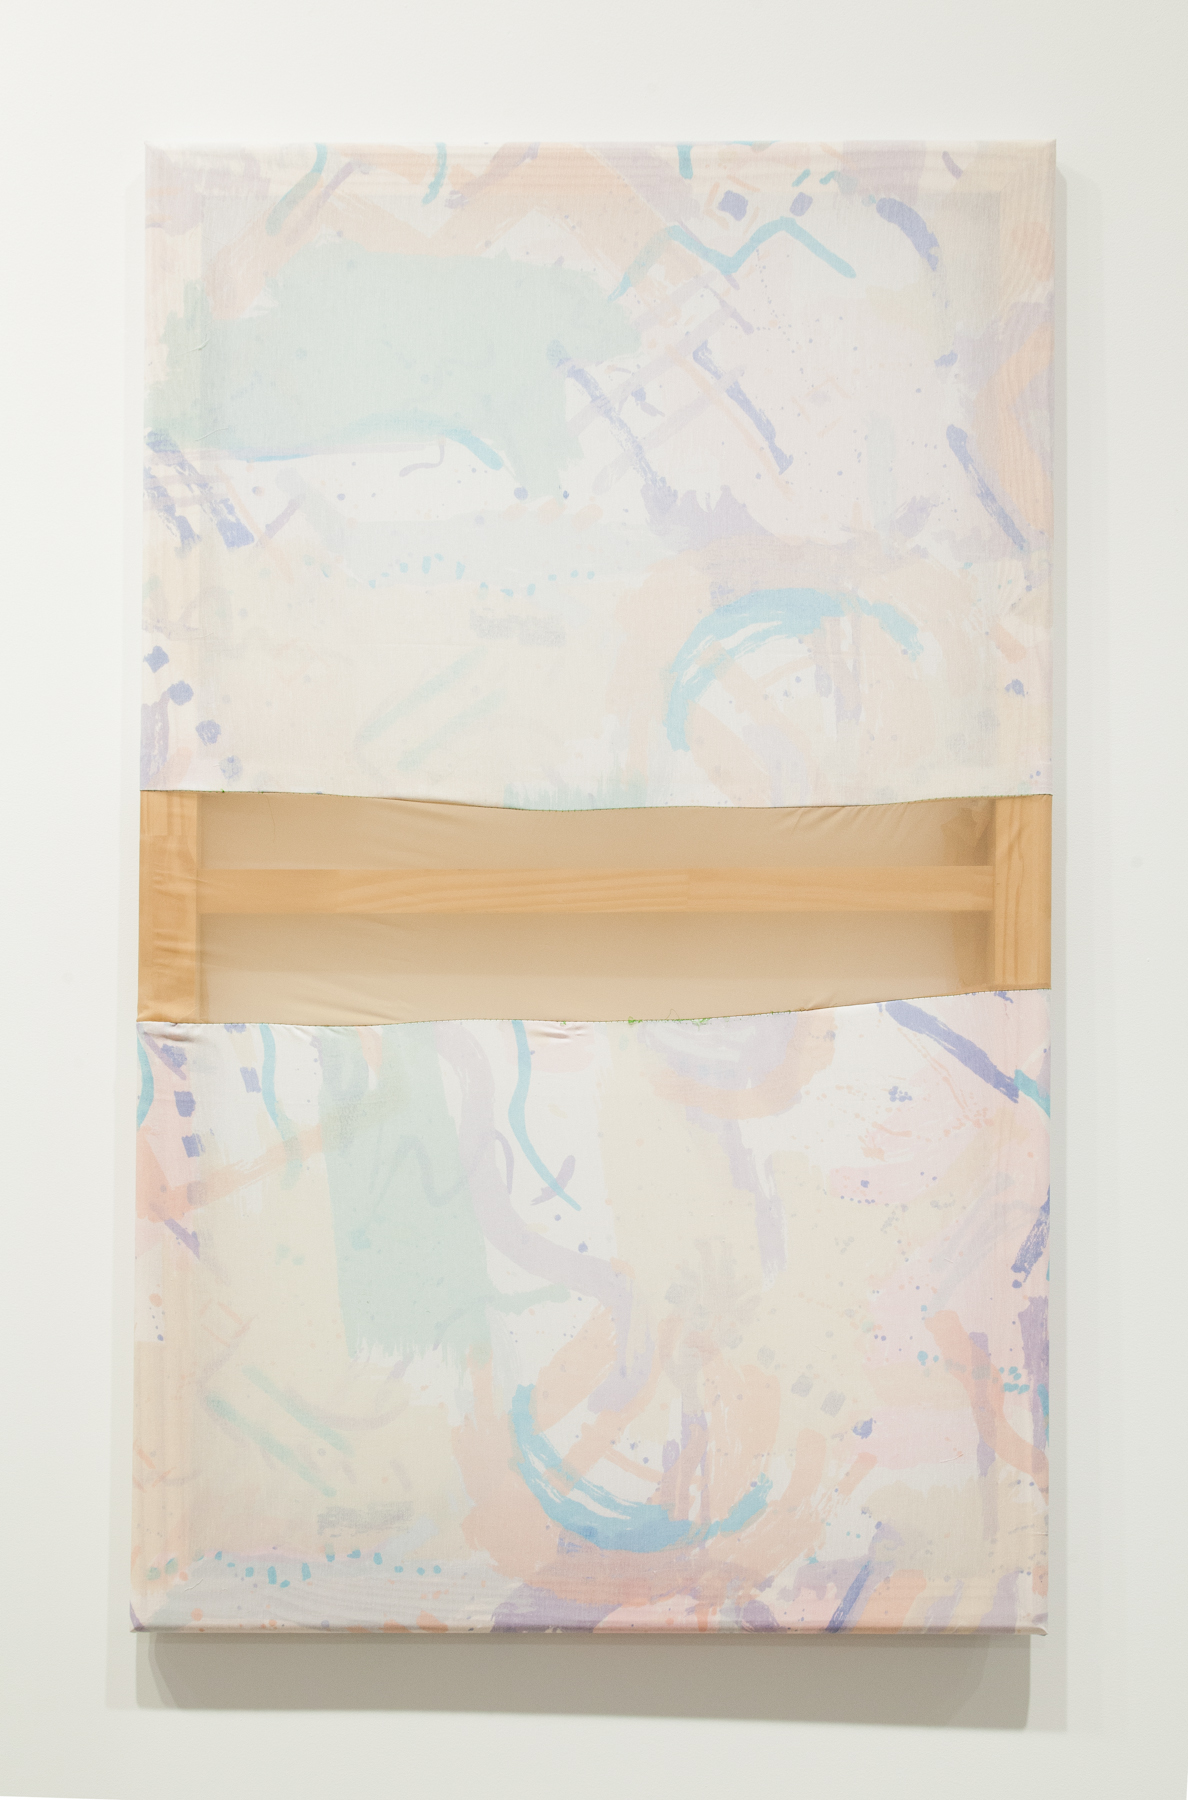 Tameka Norris   Mehetabel (Contrapposto series) , 2013 bedsheets, found fabric, and thread 30 x 50 inches 76.2 x 127 cm